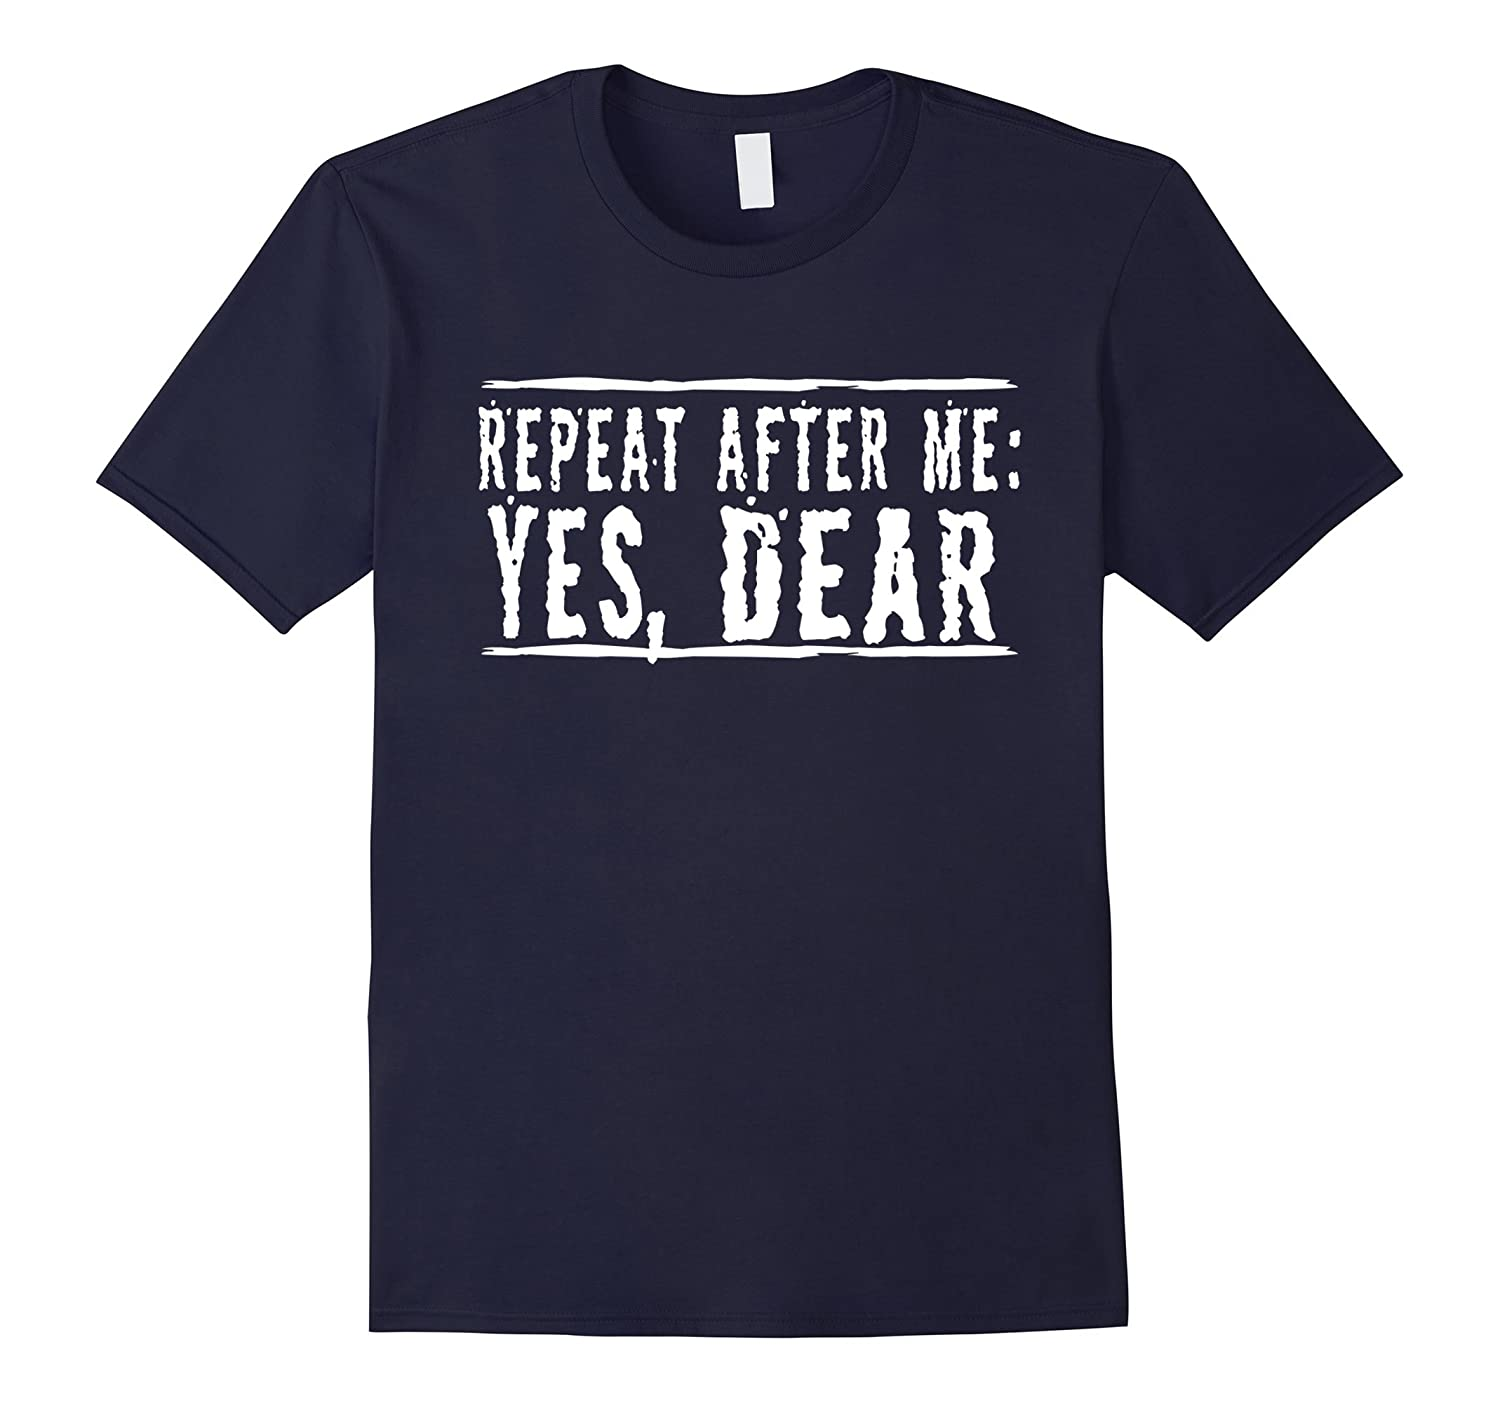 Repeat After Me, Yes Dear Funny T-Shirt